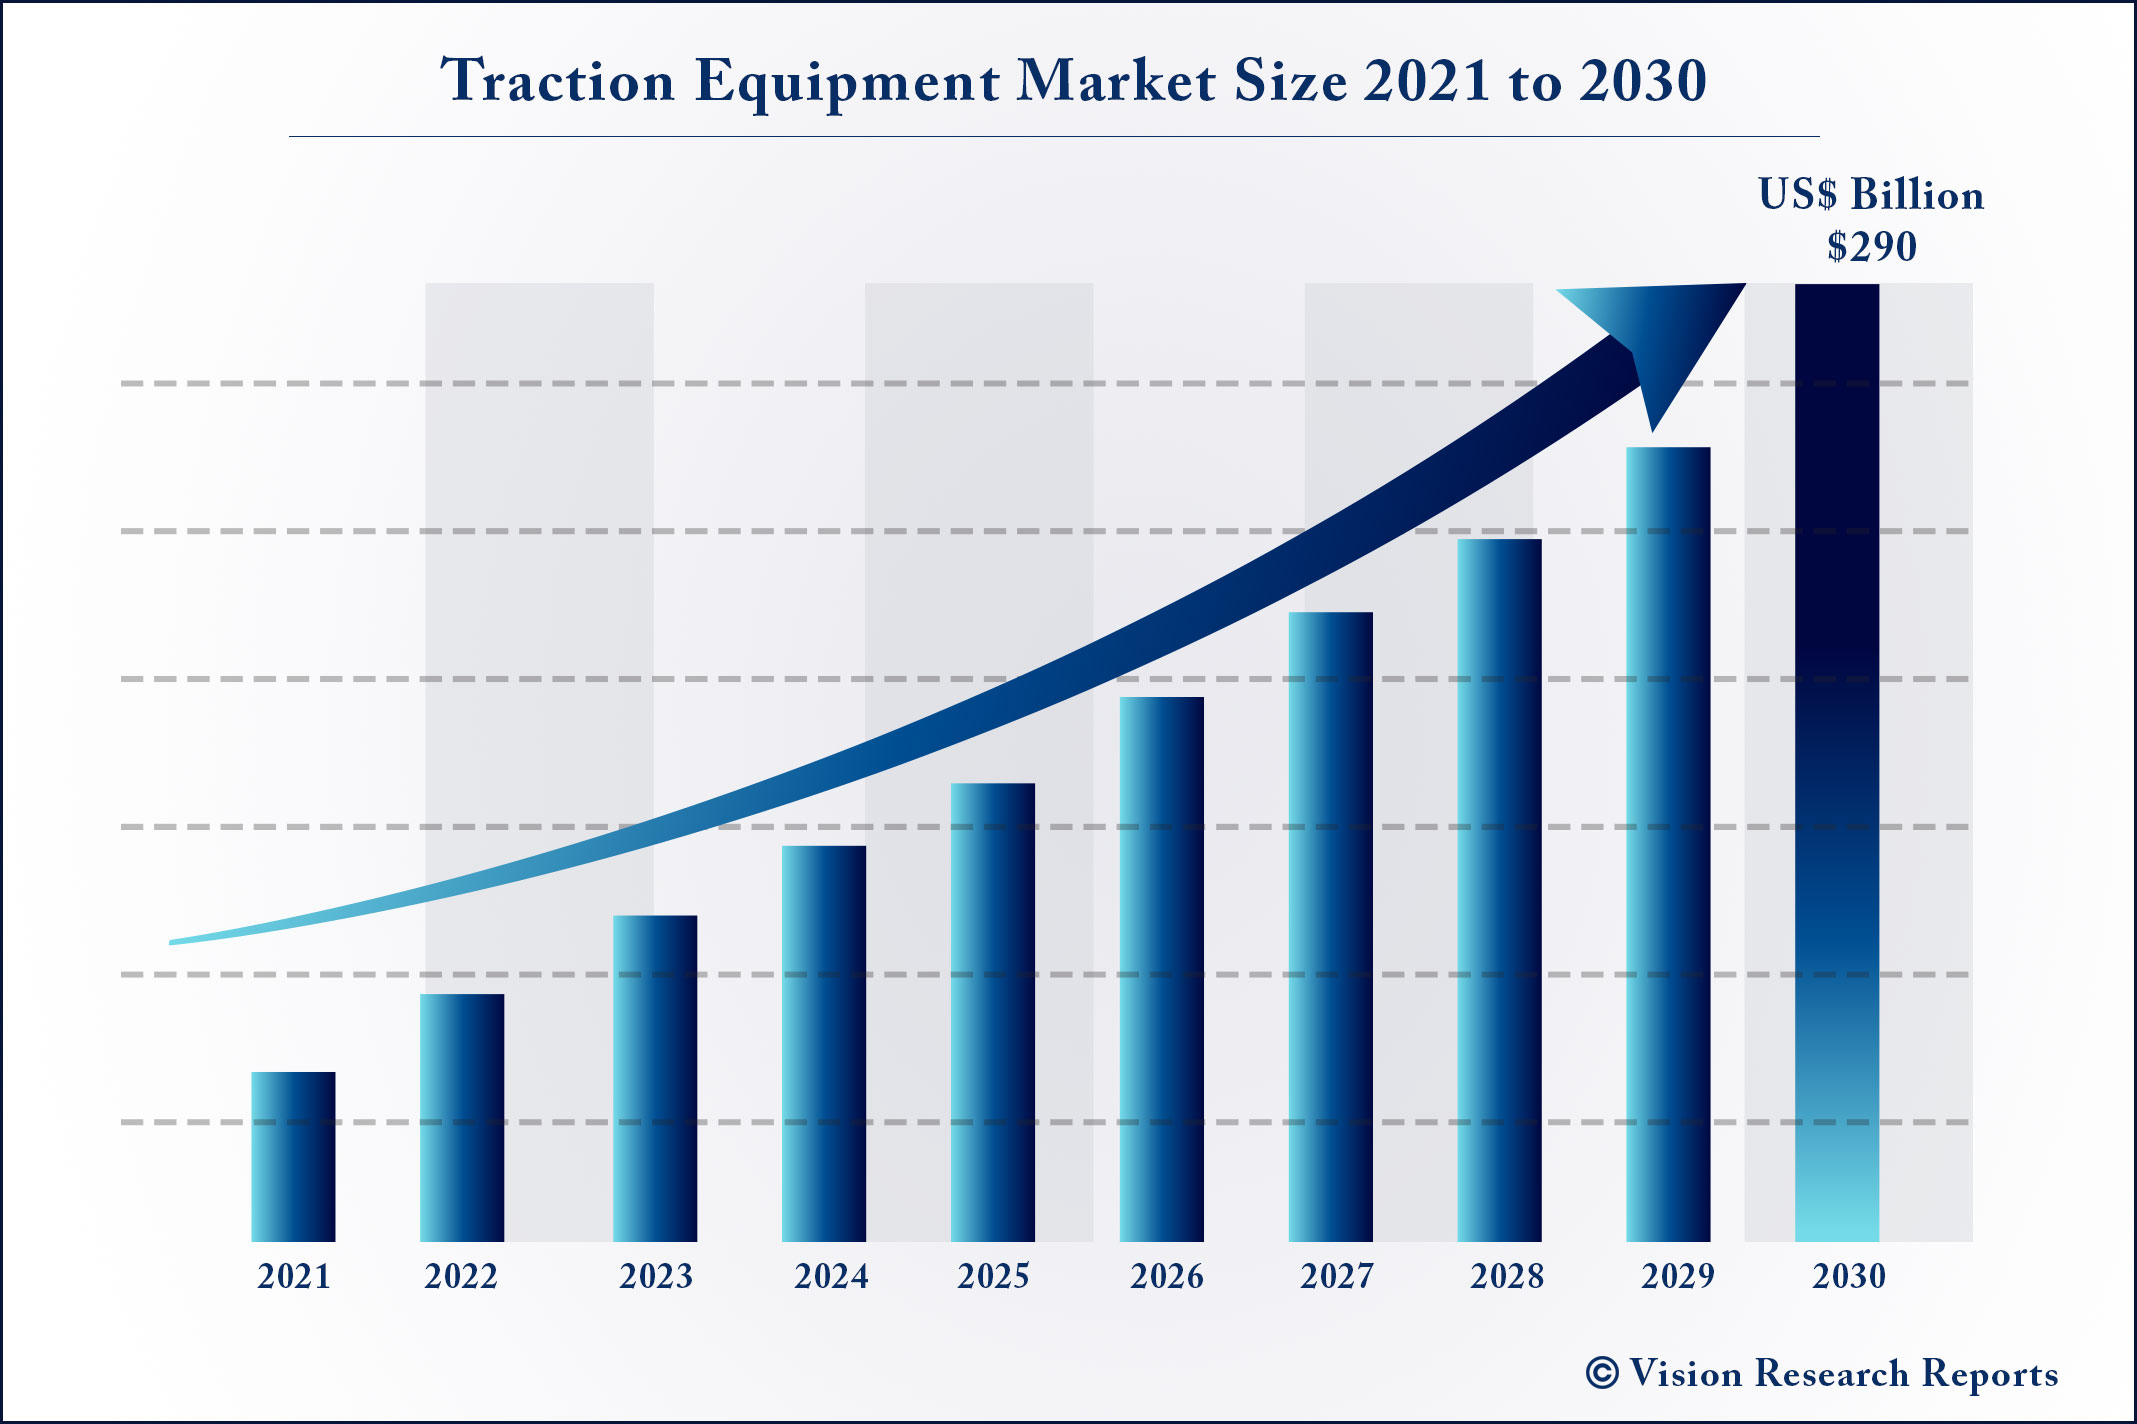 Traction Equipment Market Size 2021 to 2030